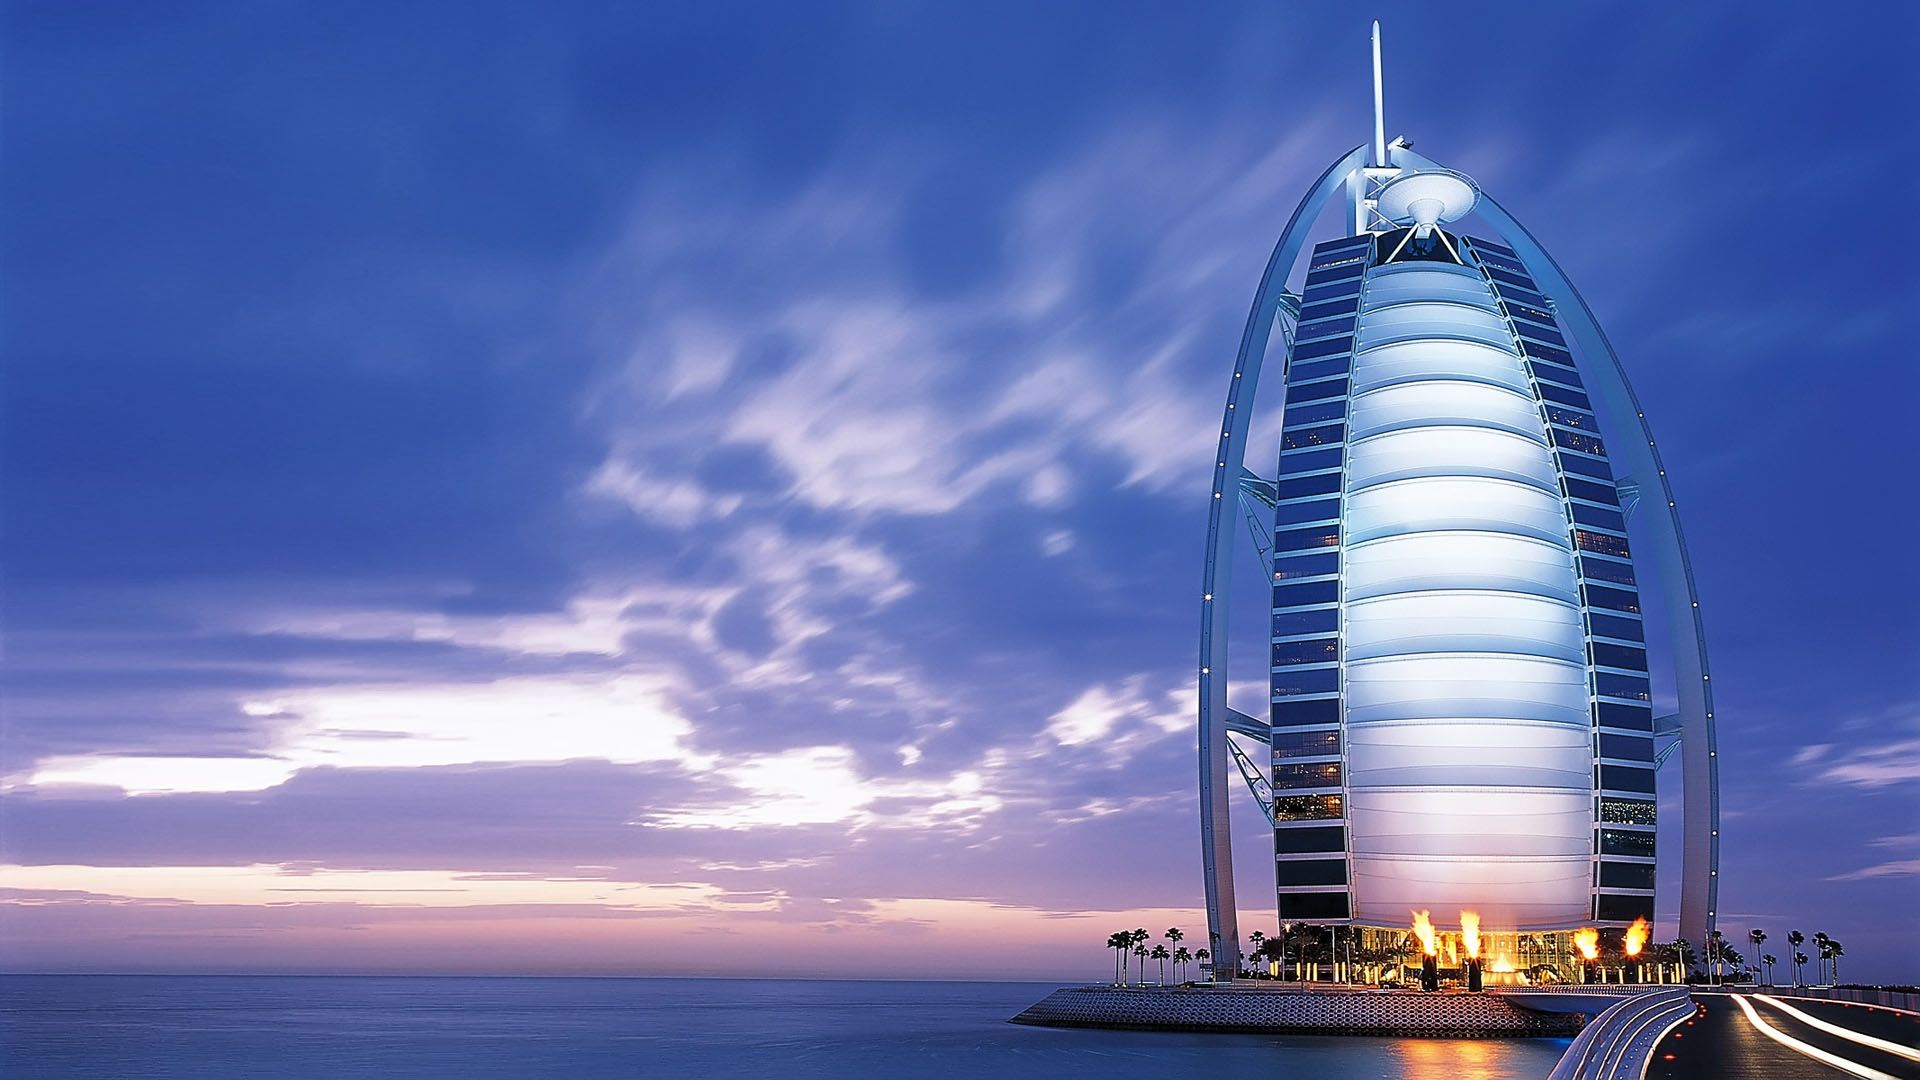 Burj Al Arab Best Travel Wallpaper 1080p Full Hd Background